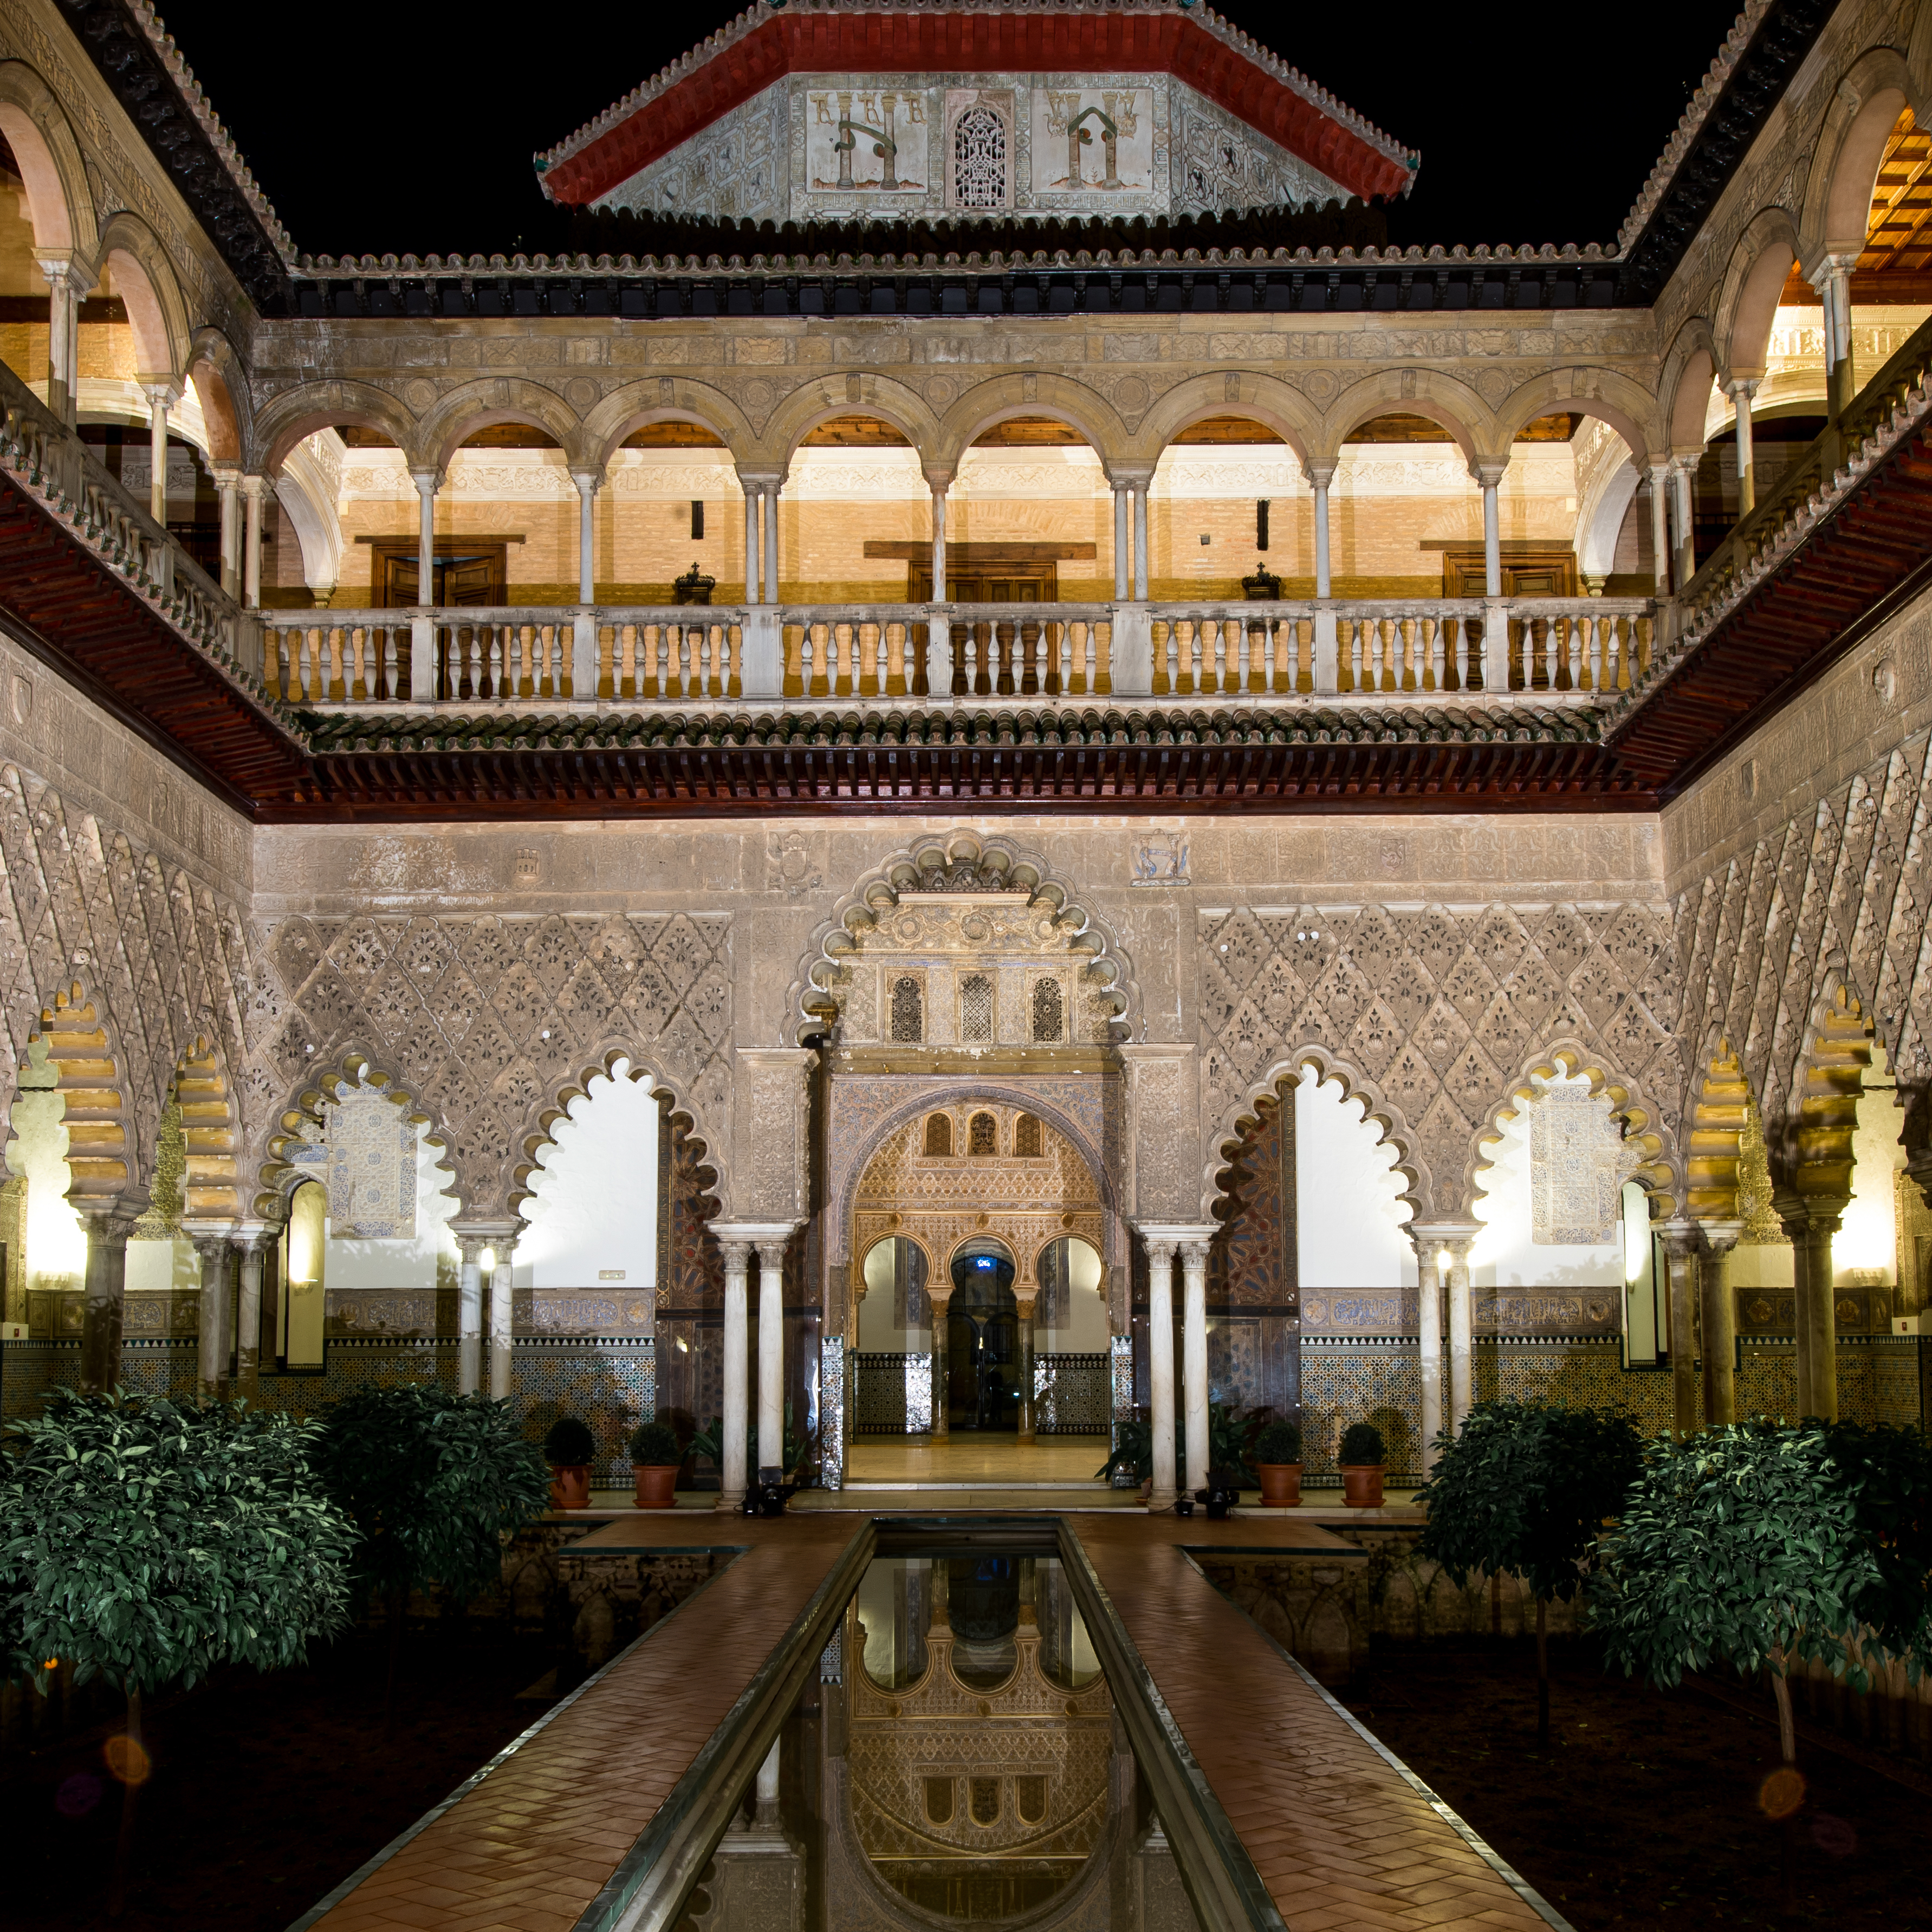 Great Art & Architecture of Andalusia, Spain